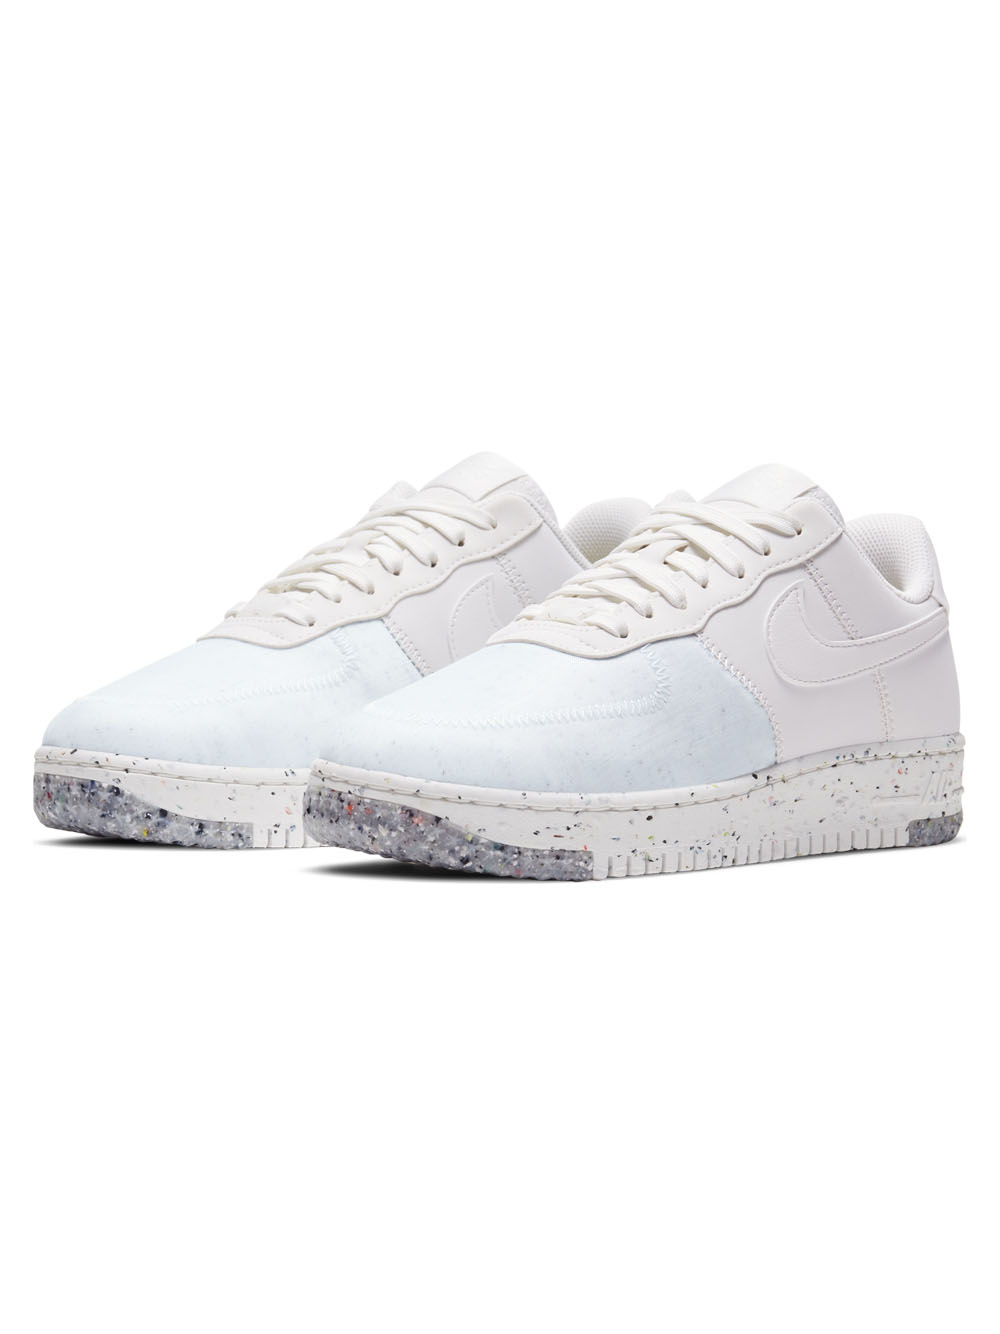 【NIKE】W NIKE AIR FORCE 1 CRATER